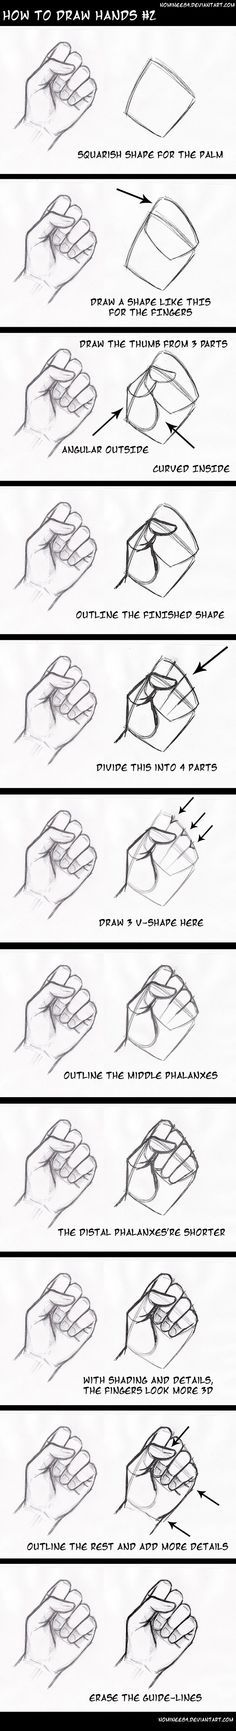 really helpgul breakdown of the hand. i personally am terrible at draweing ahnds so this is very relevant to me and charector design.